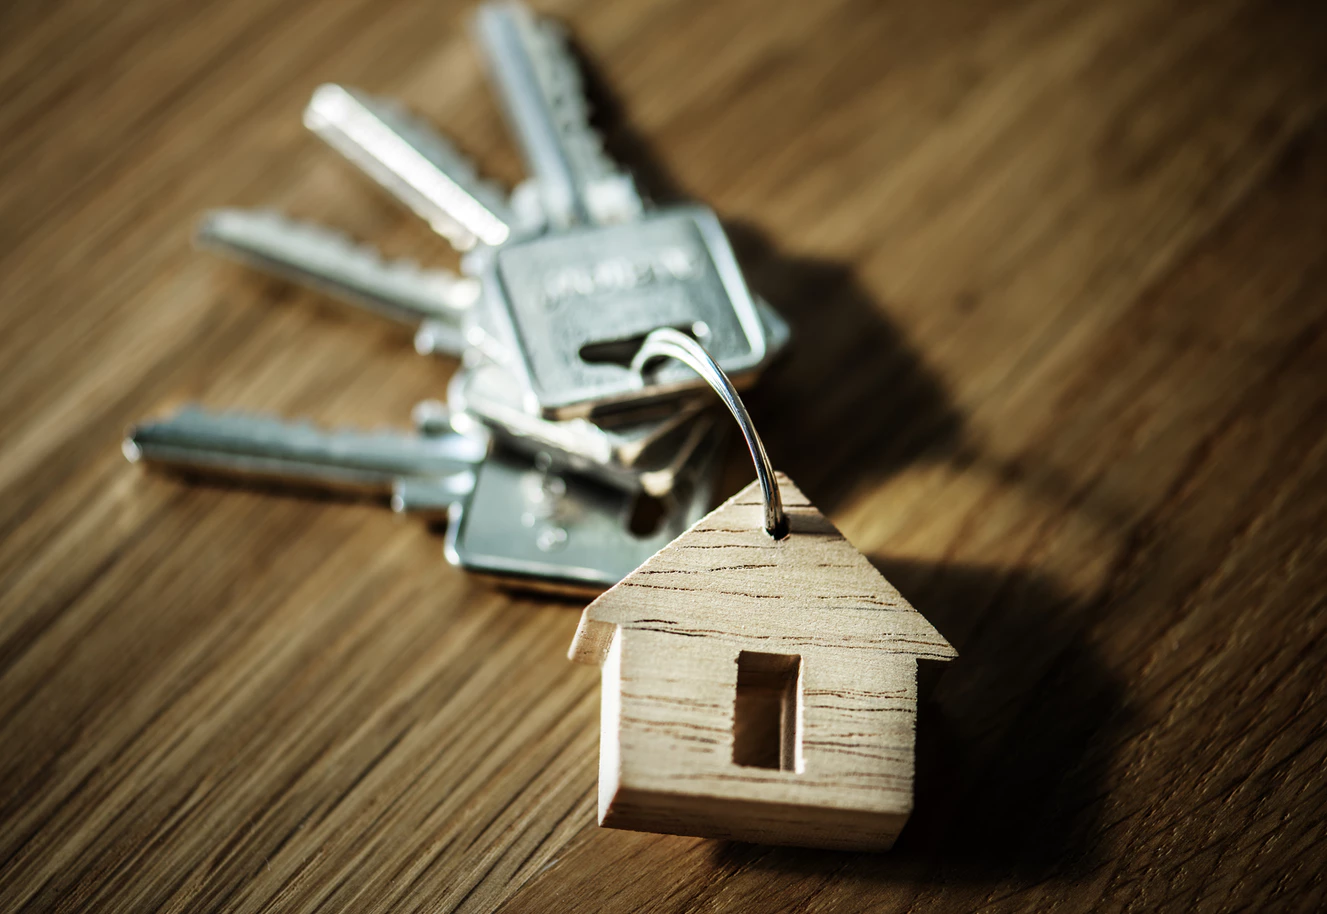 How to Get Your Property Rent-Ready